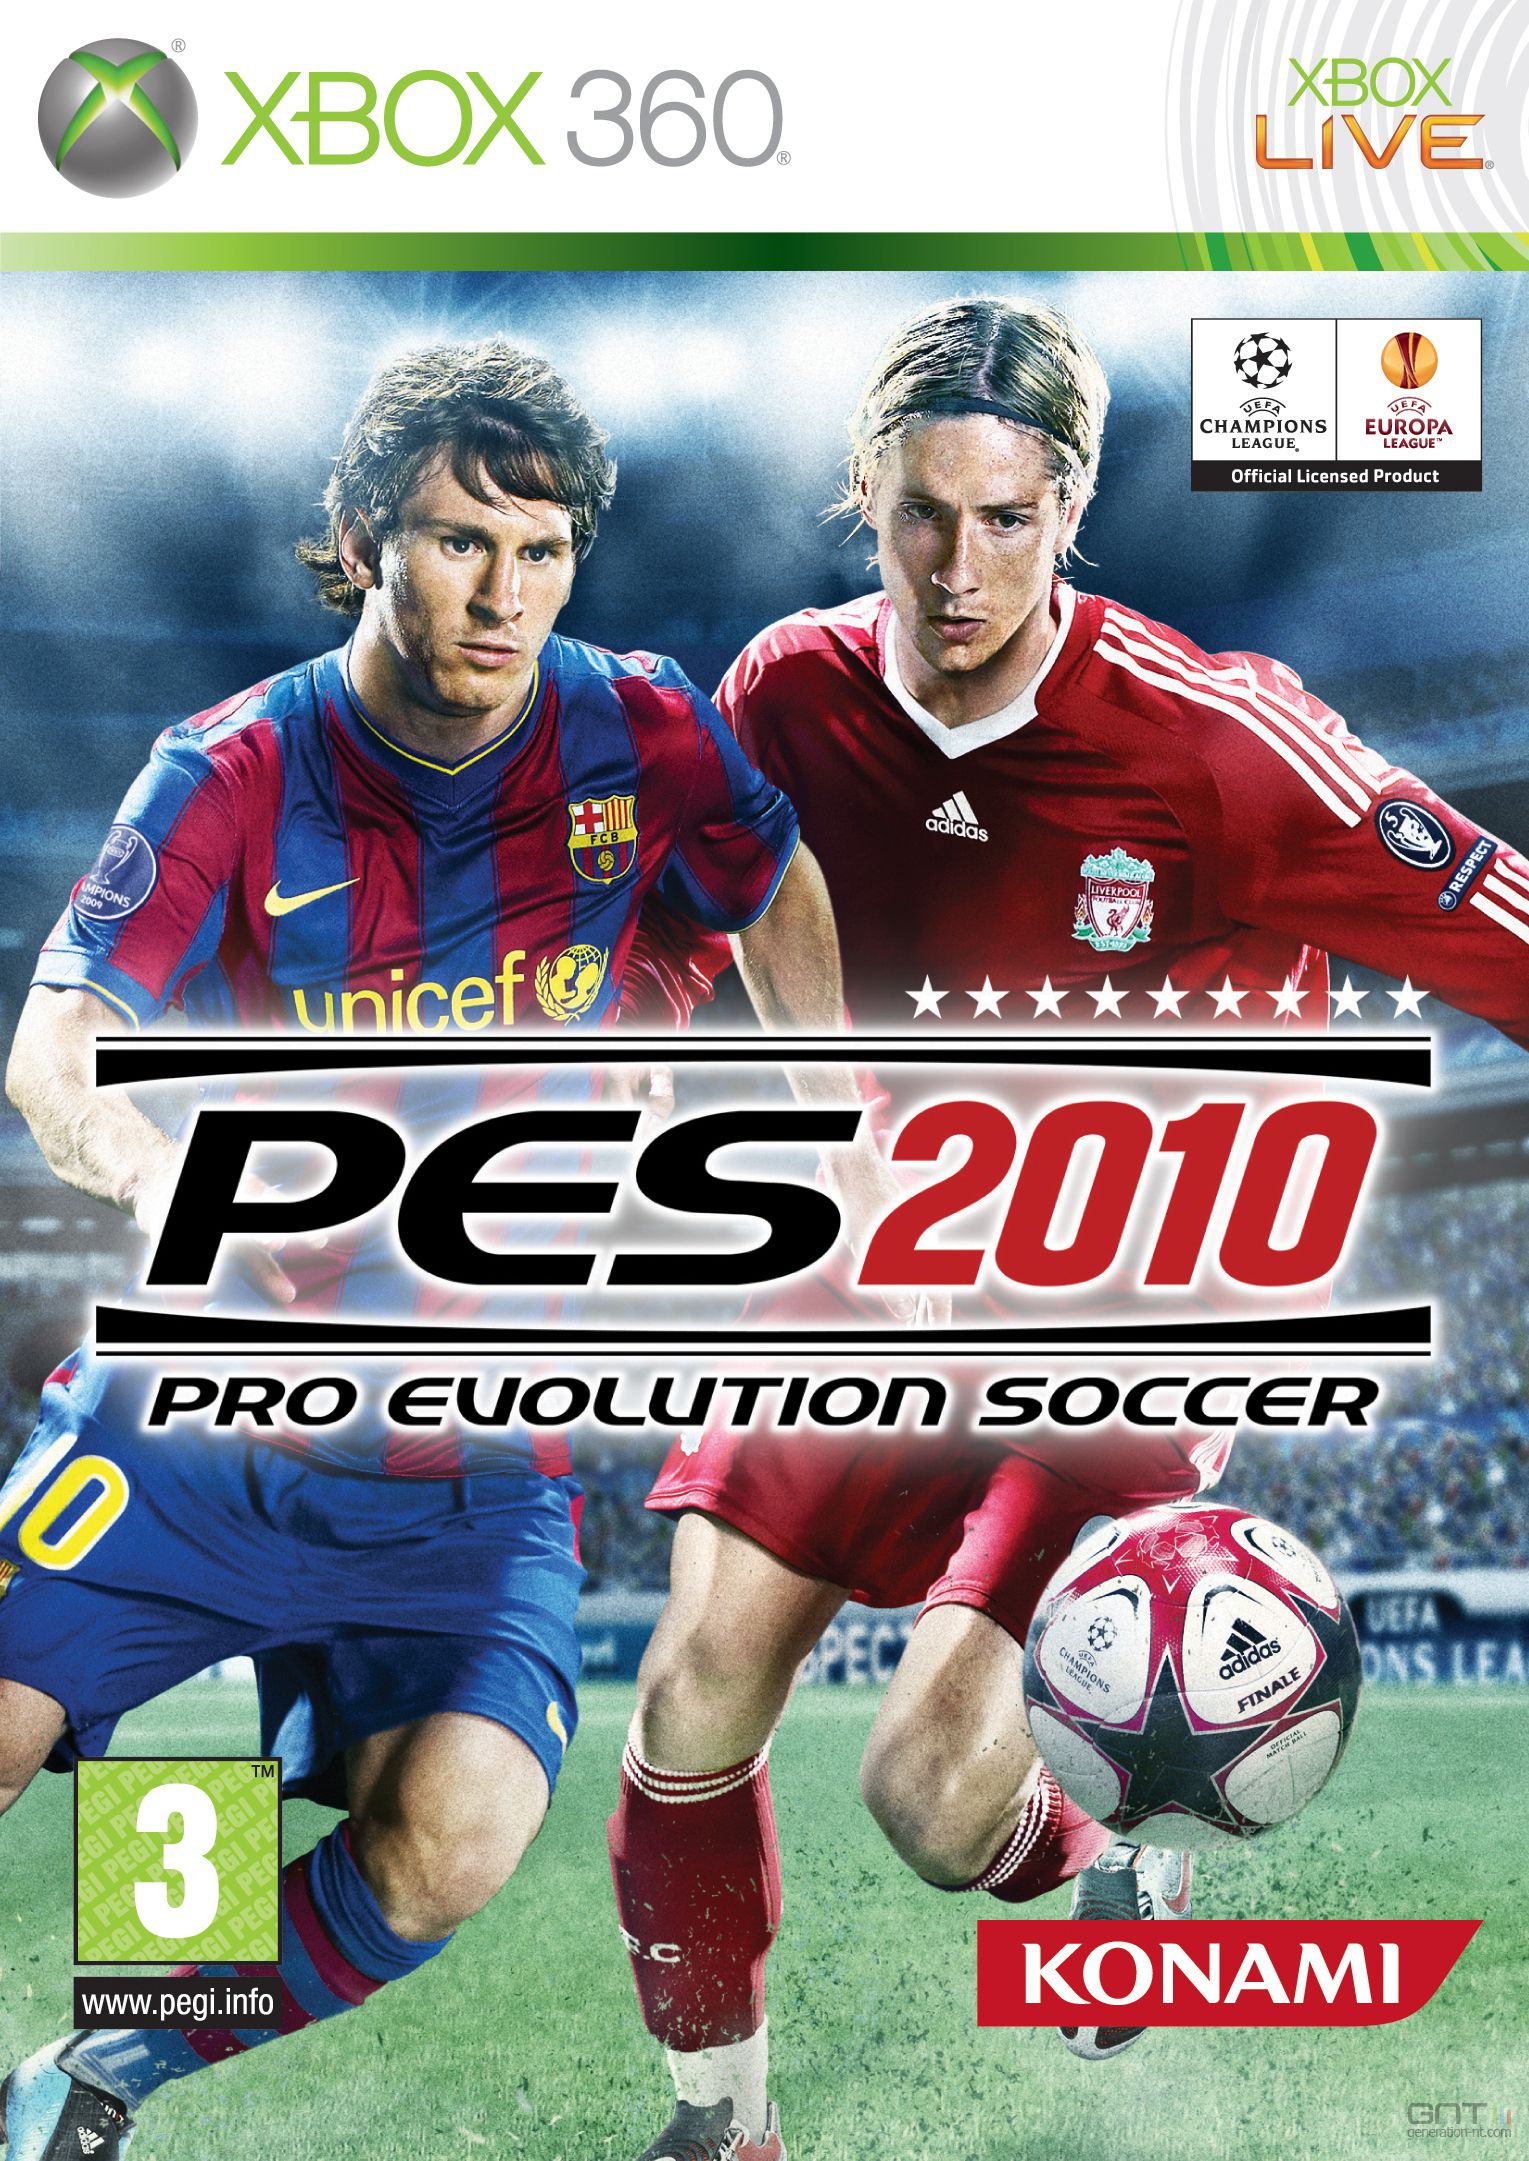 pes 2010 x-box,pes 2010 psp,pes 2010 pc,pes 2010 ps2